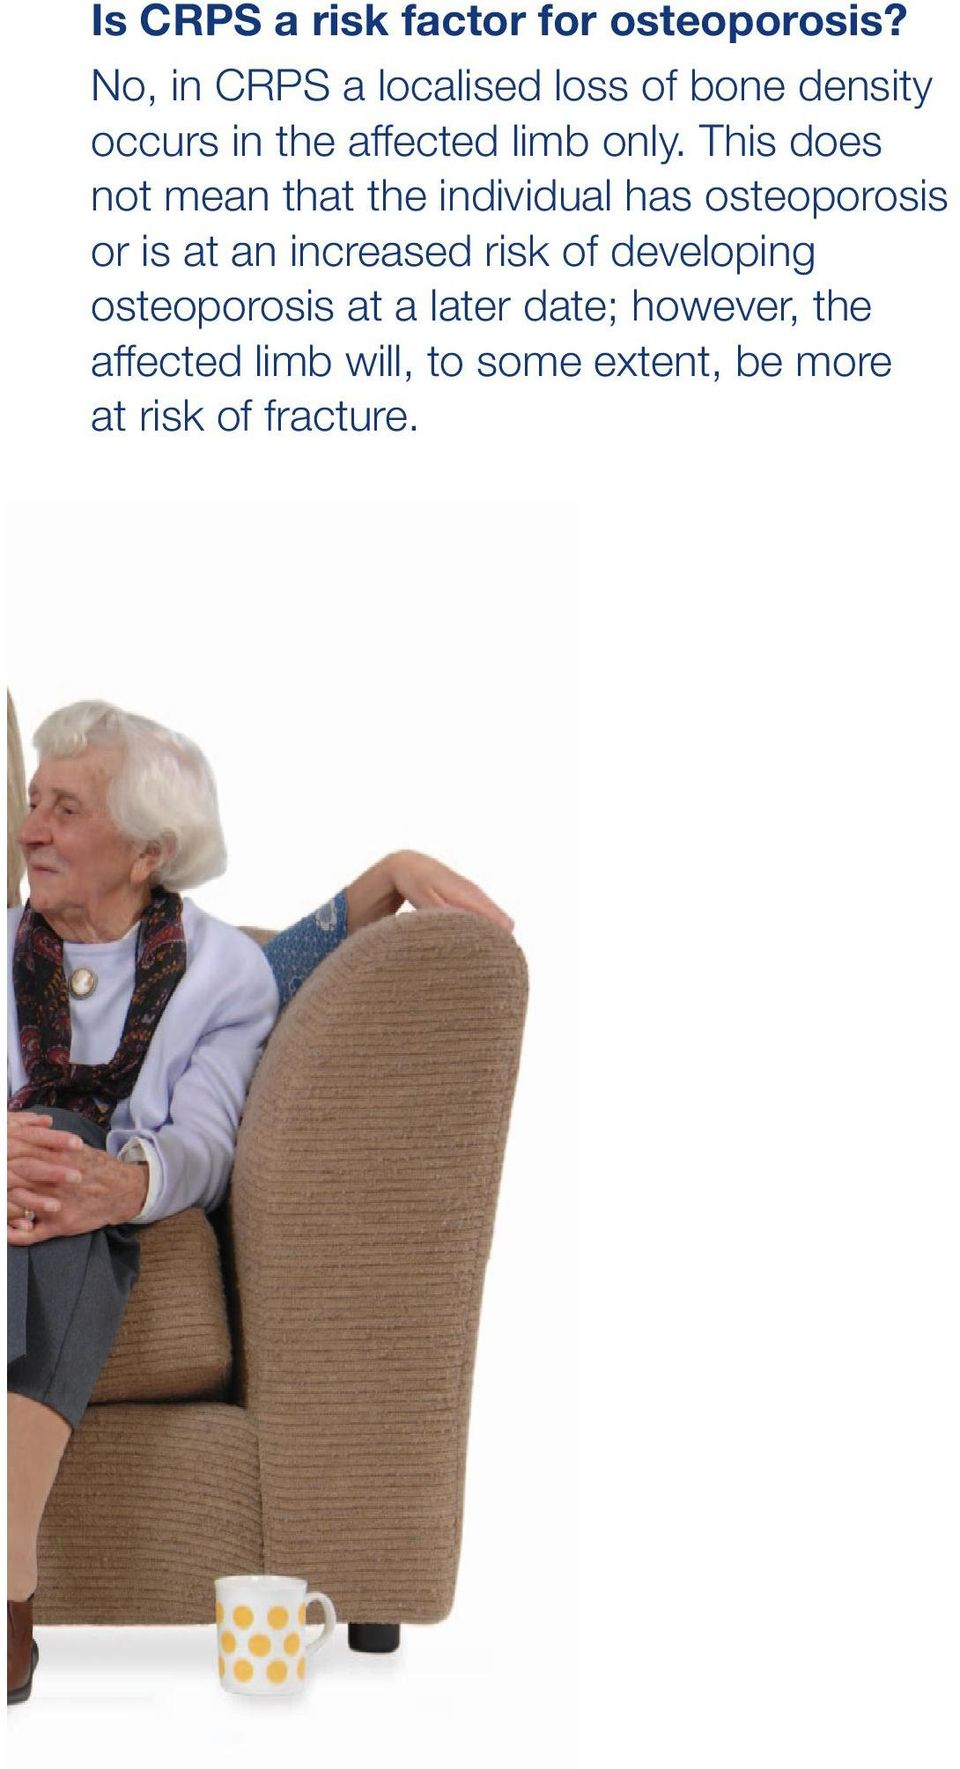 This does not mean that the individual has osteoporosis or is at an increased